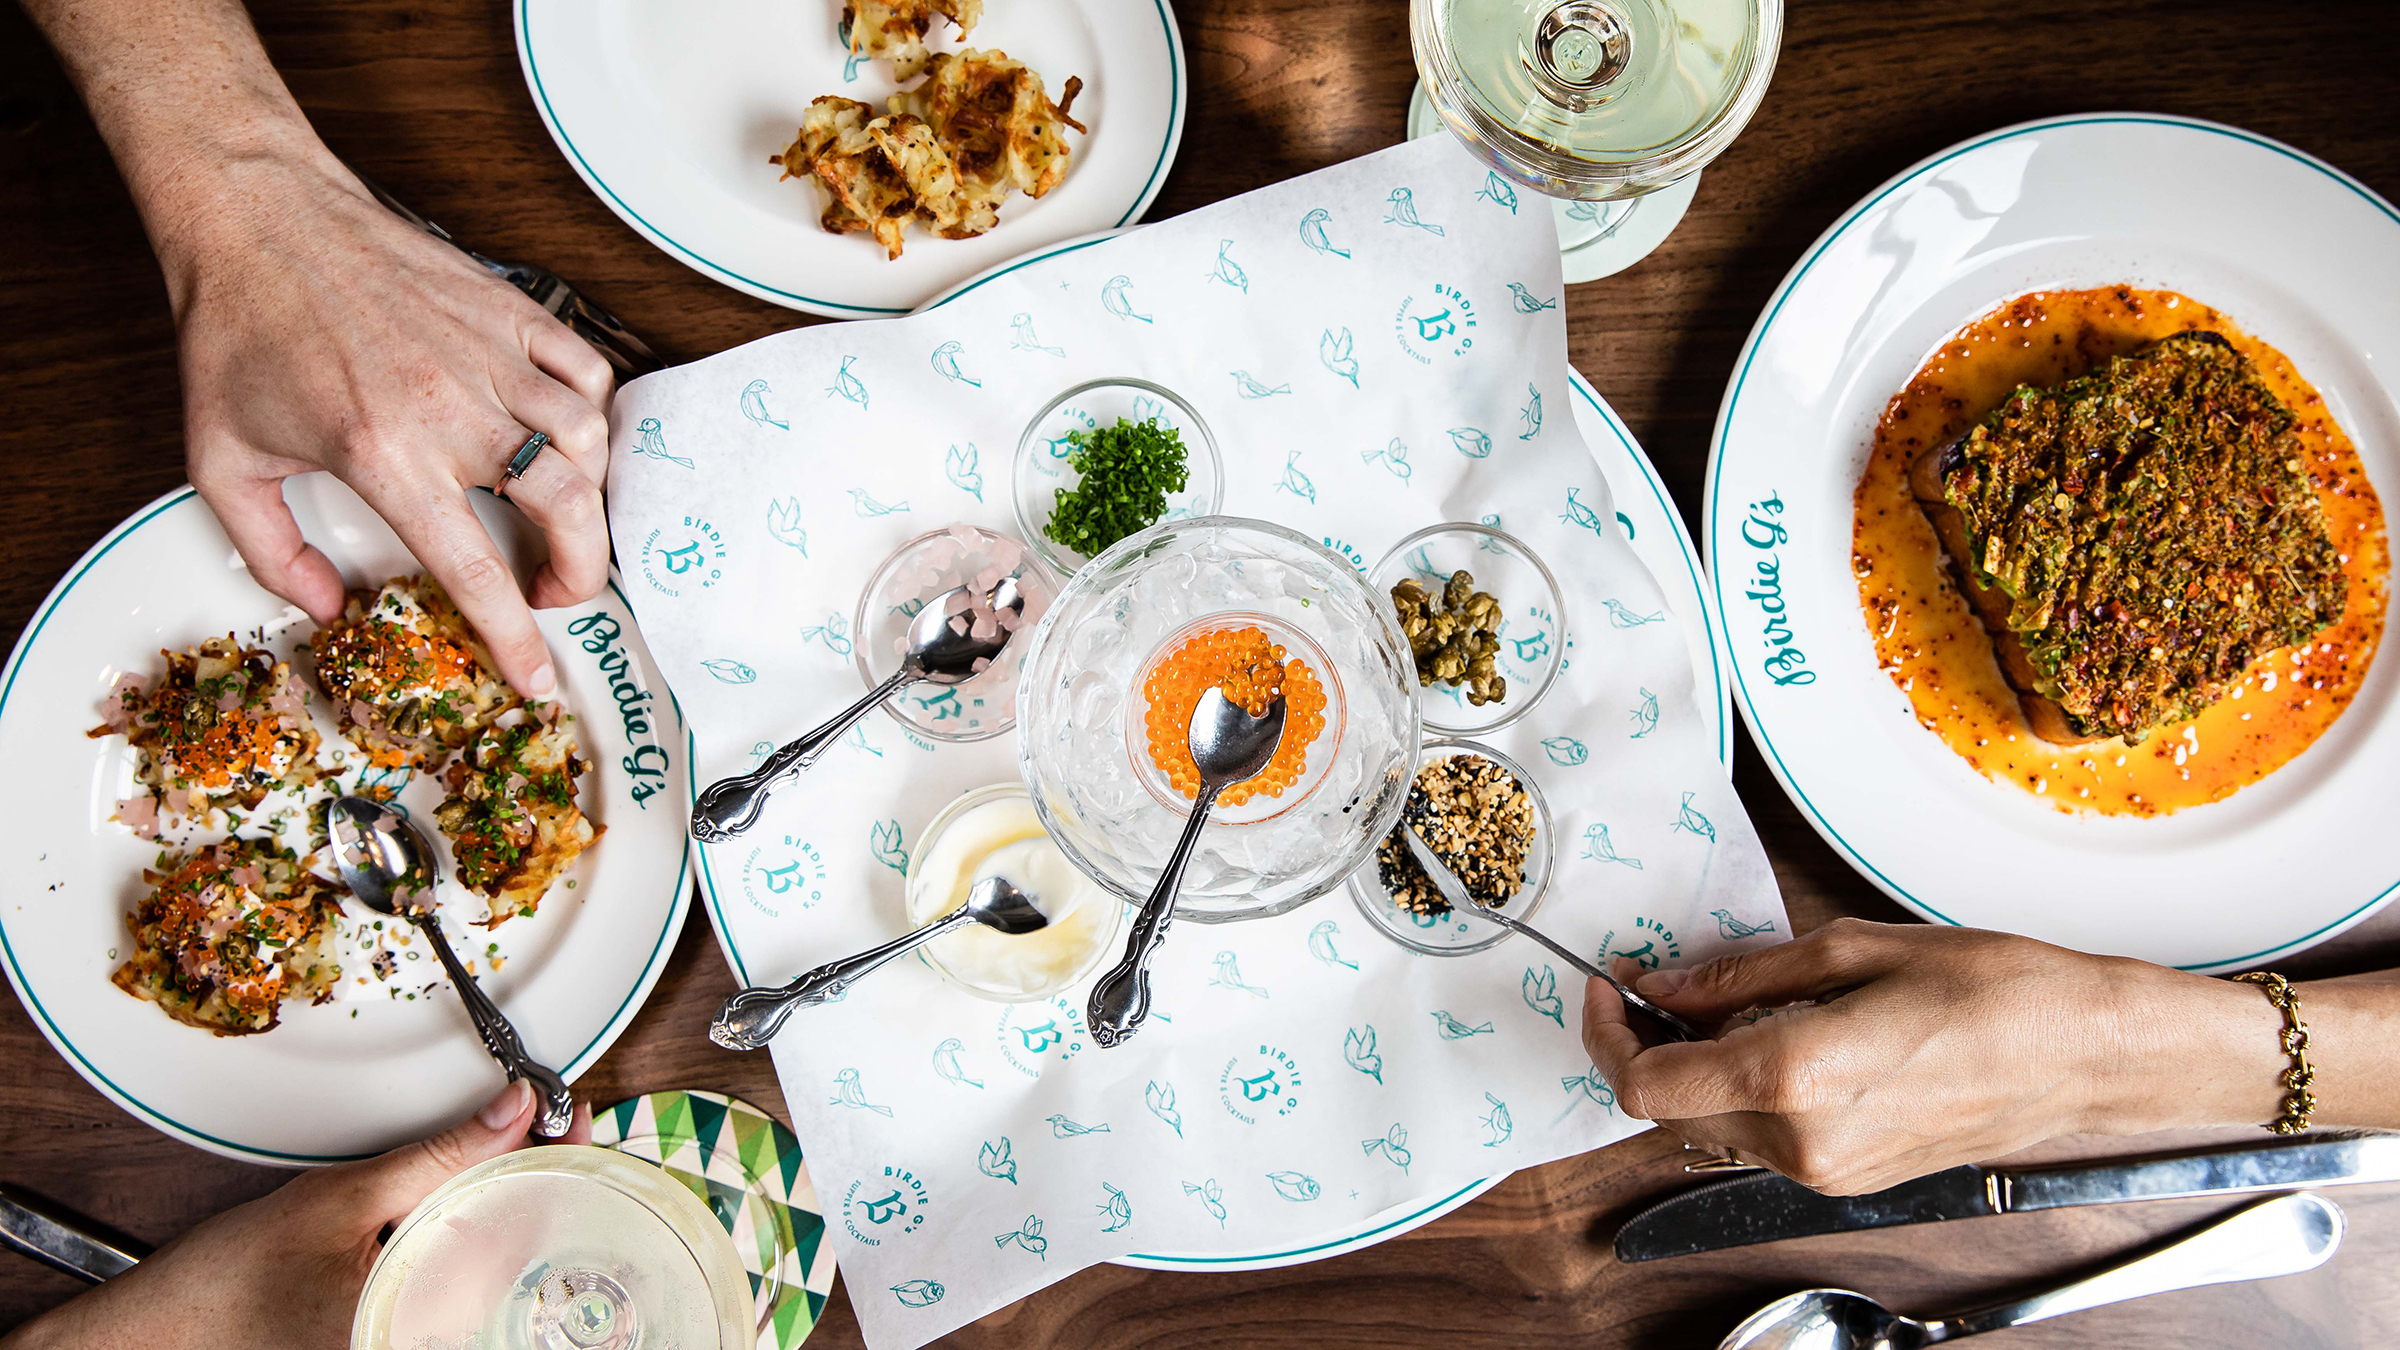 The Westside meets the Midwest at Jeremy Fox's new restaurant, Birdie G's